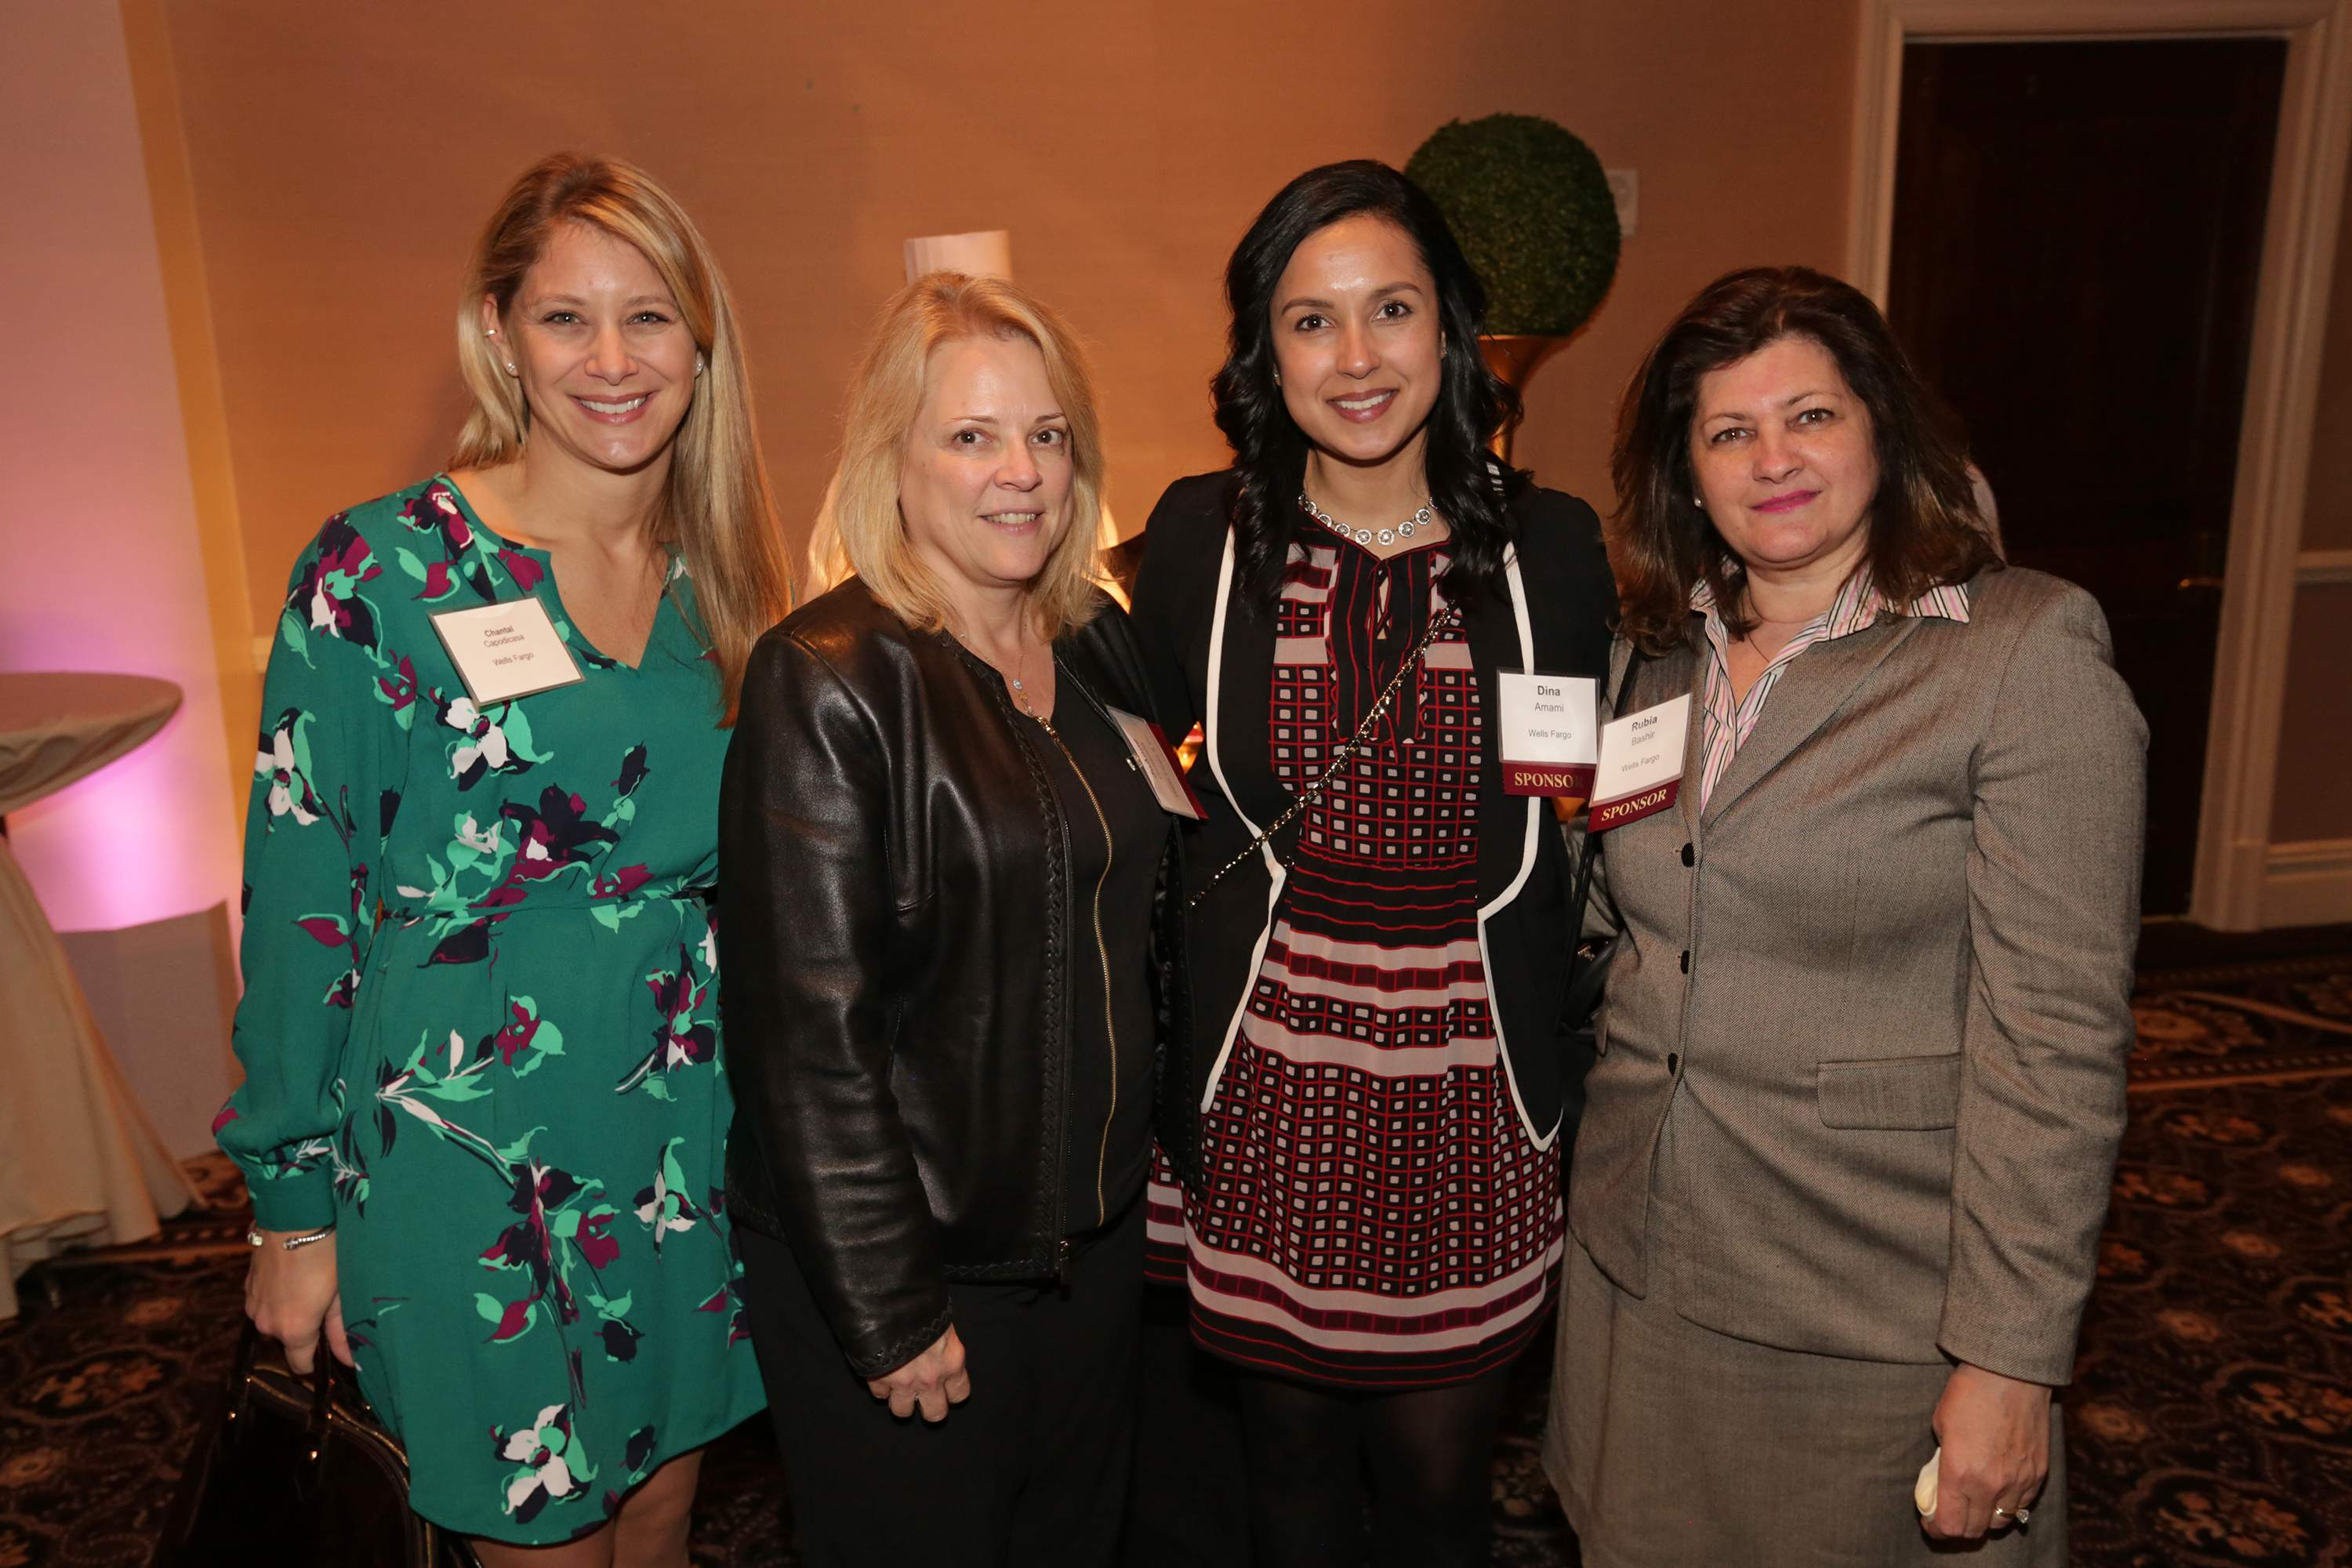 Representatives from Wells Fargo enjoying the night. Wells Fargo was the presenting sponsor of the Best 50 Women in Business event.